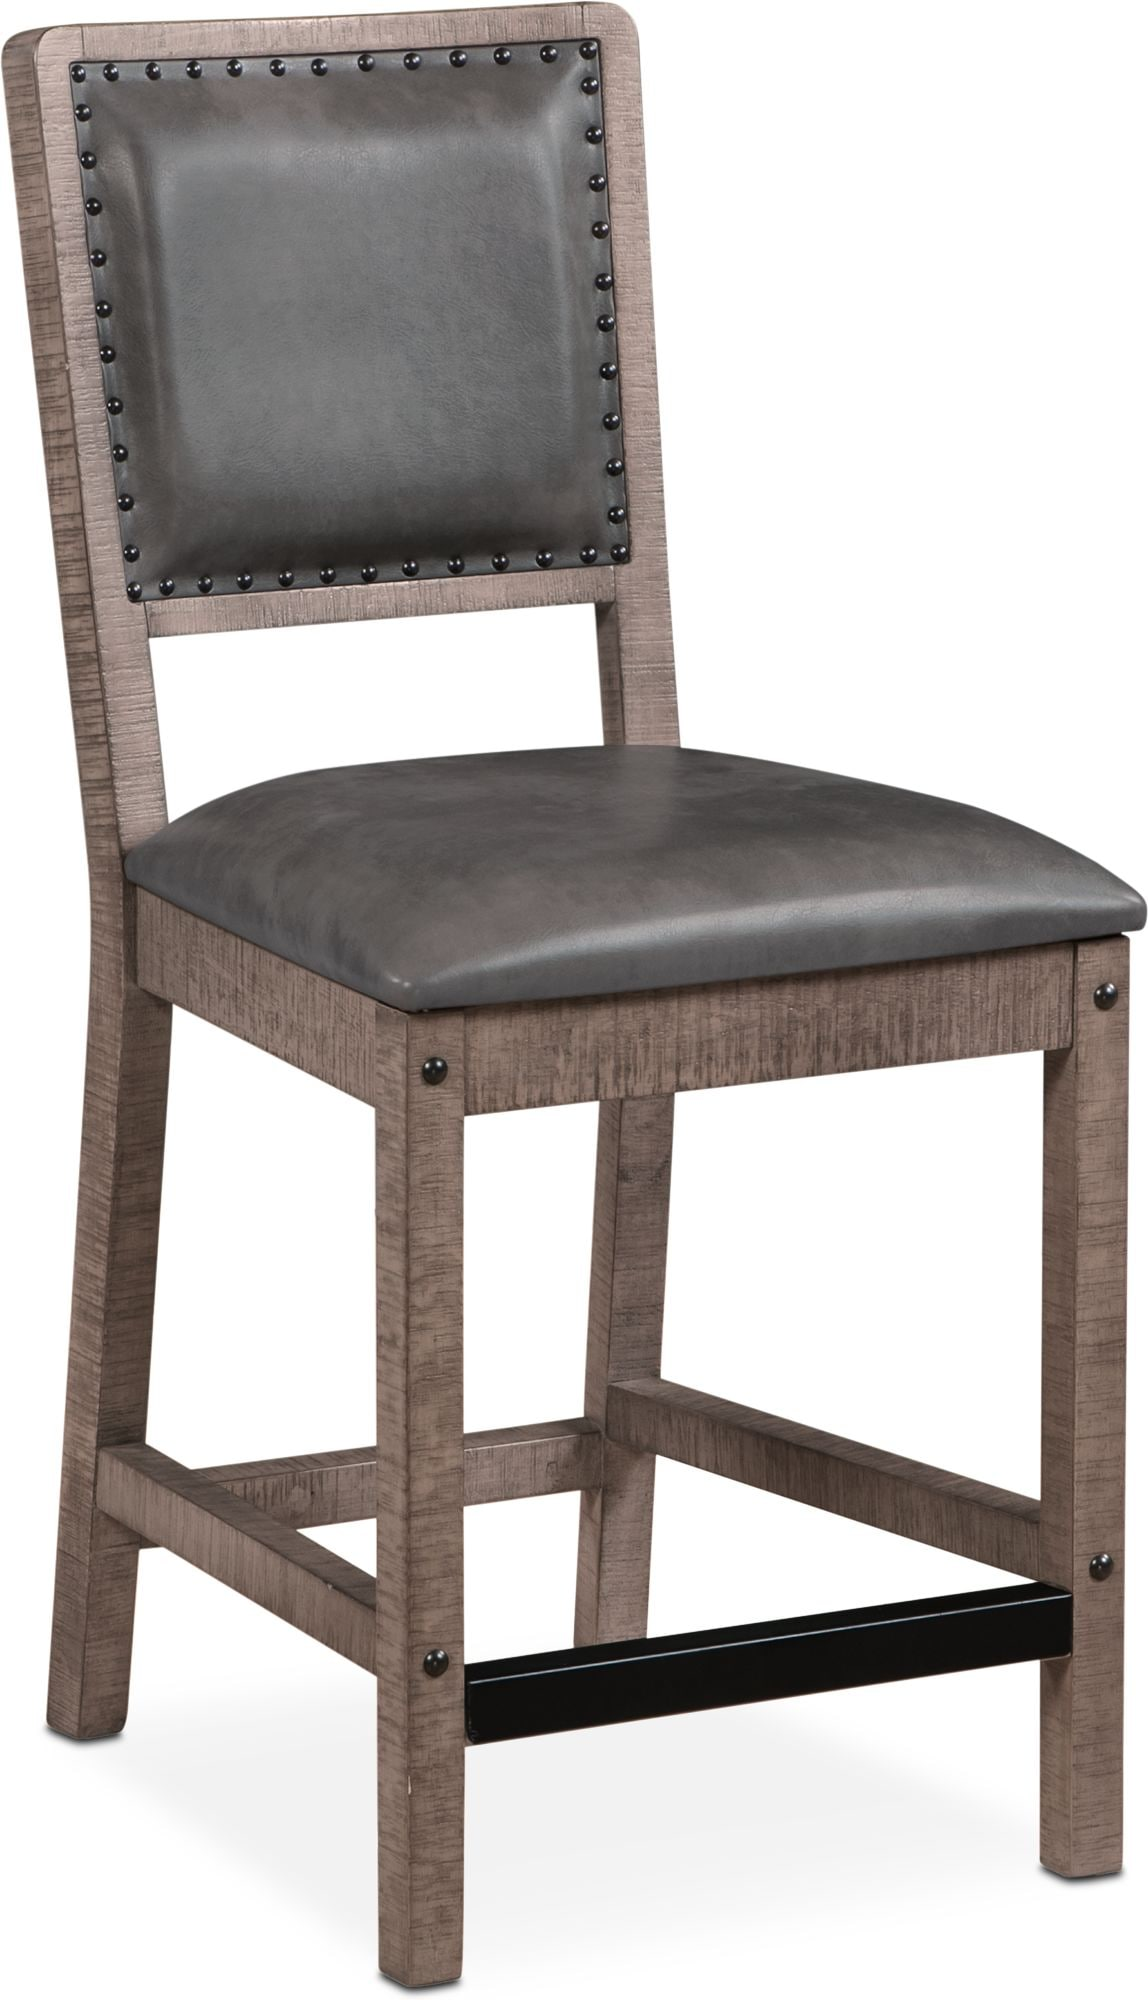 Dining Room Furniture - Newcastle Counter-Height Dining Chair